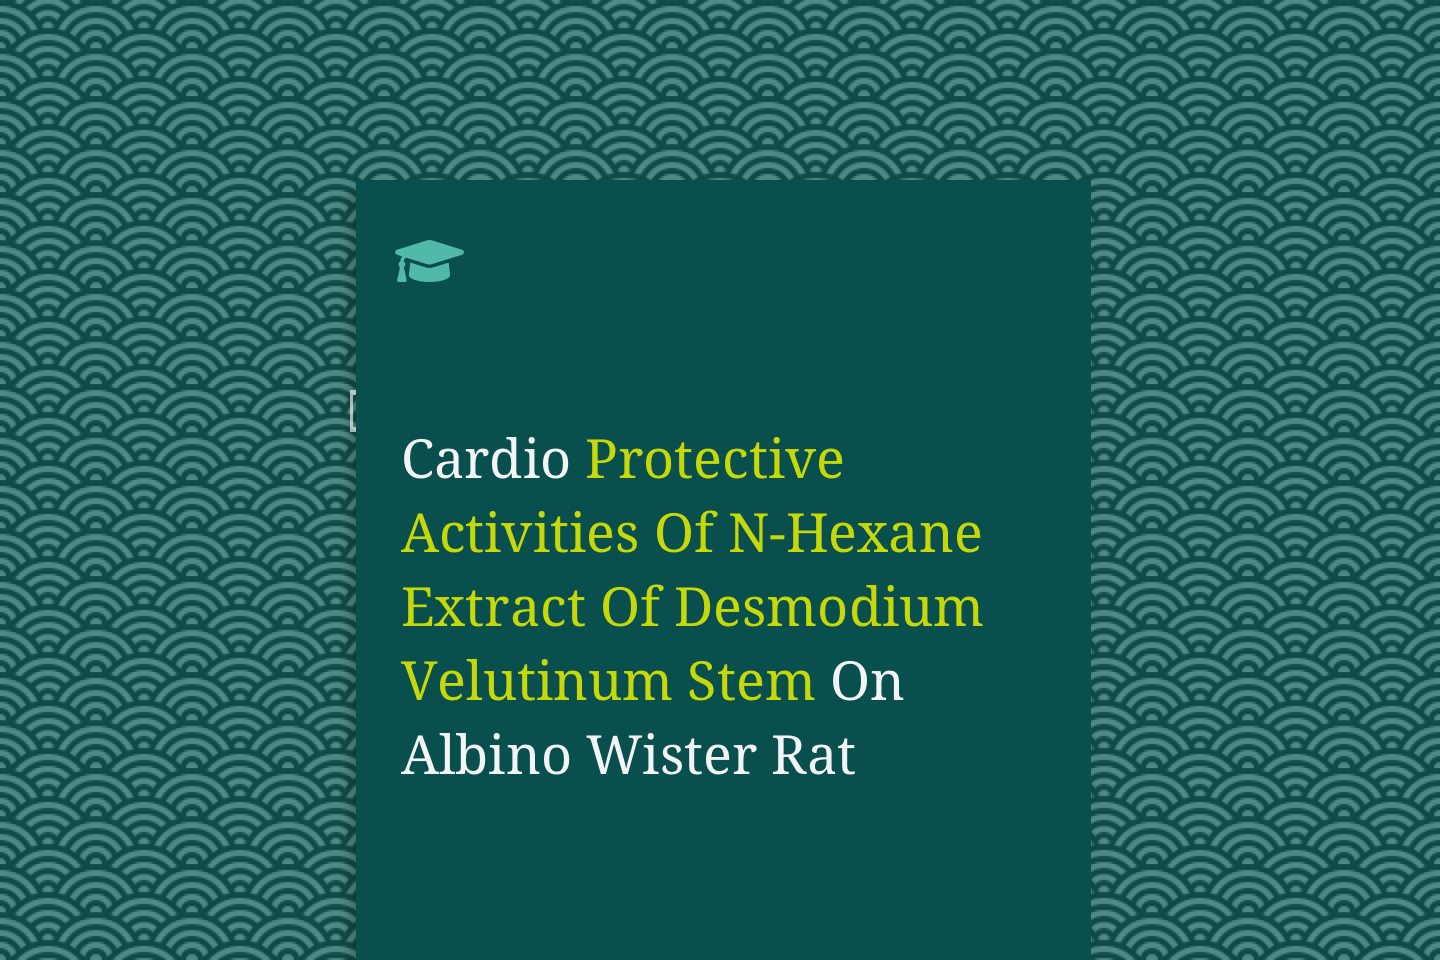 Cardio Protective Activities Of N-Hexane Extract Of Desmodium Velutinum Stem On Albino Wister Rat